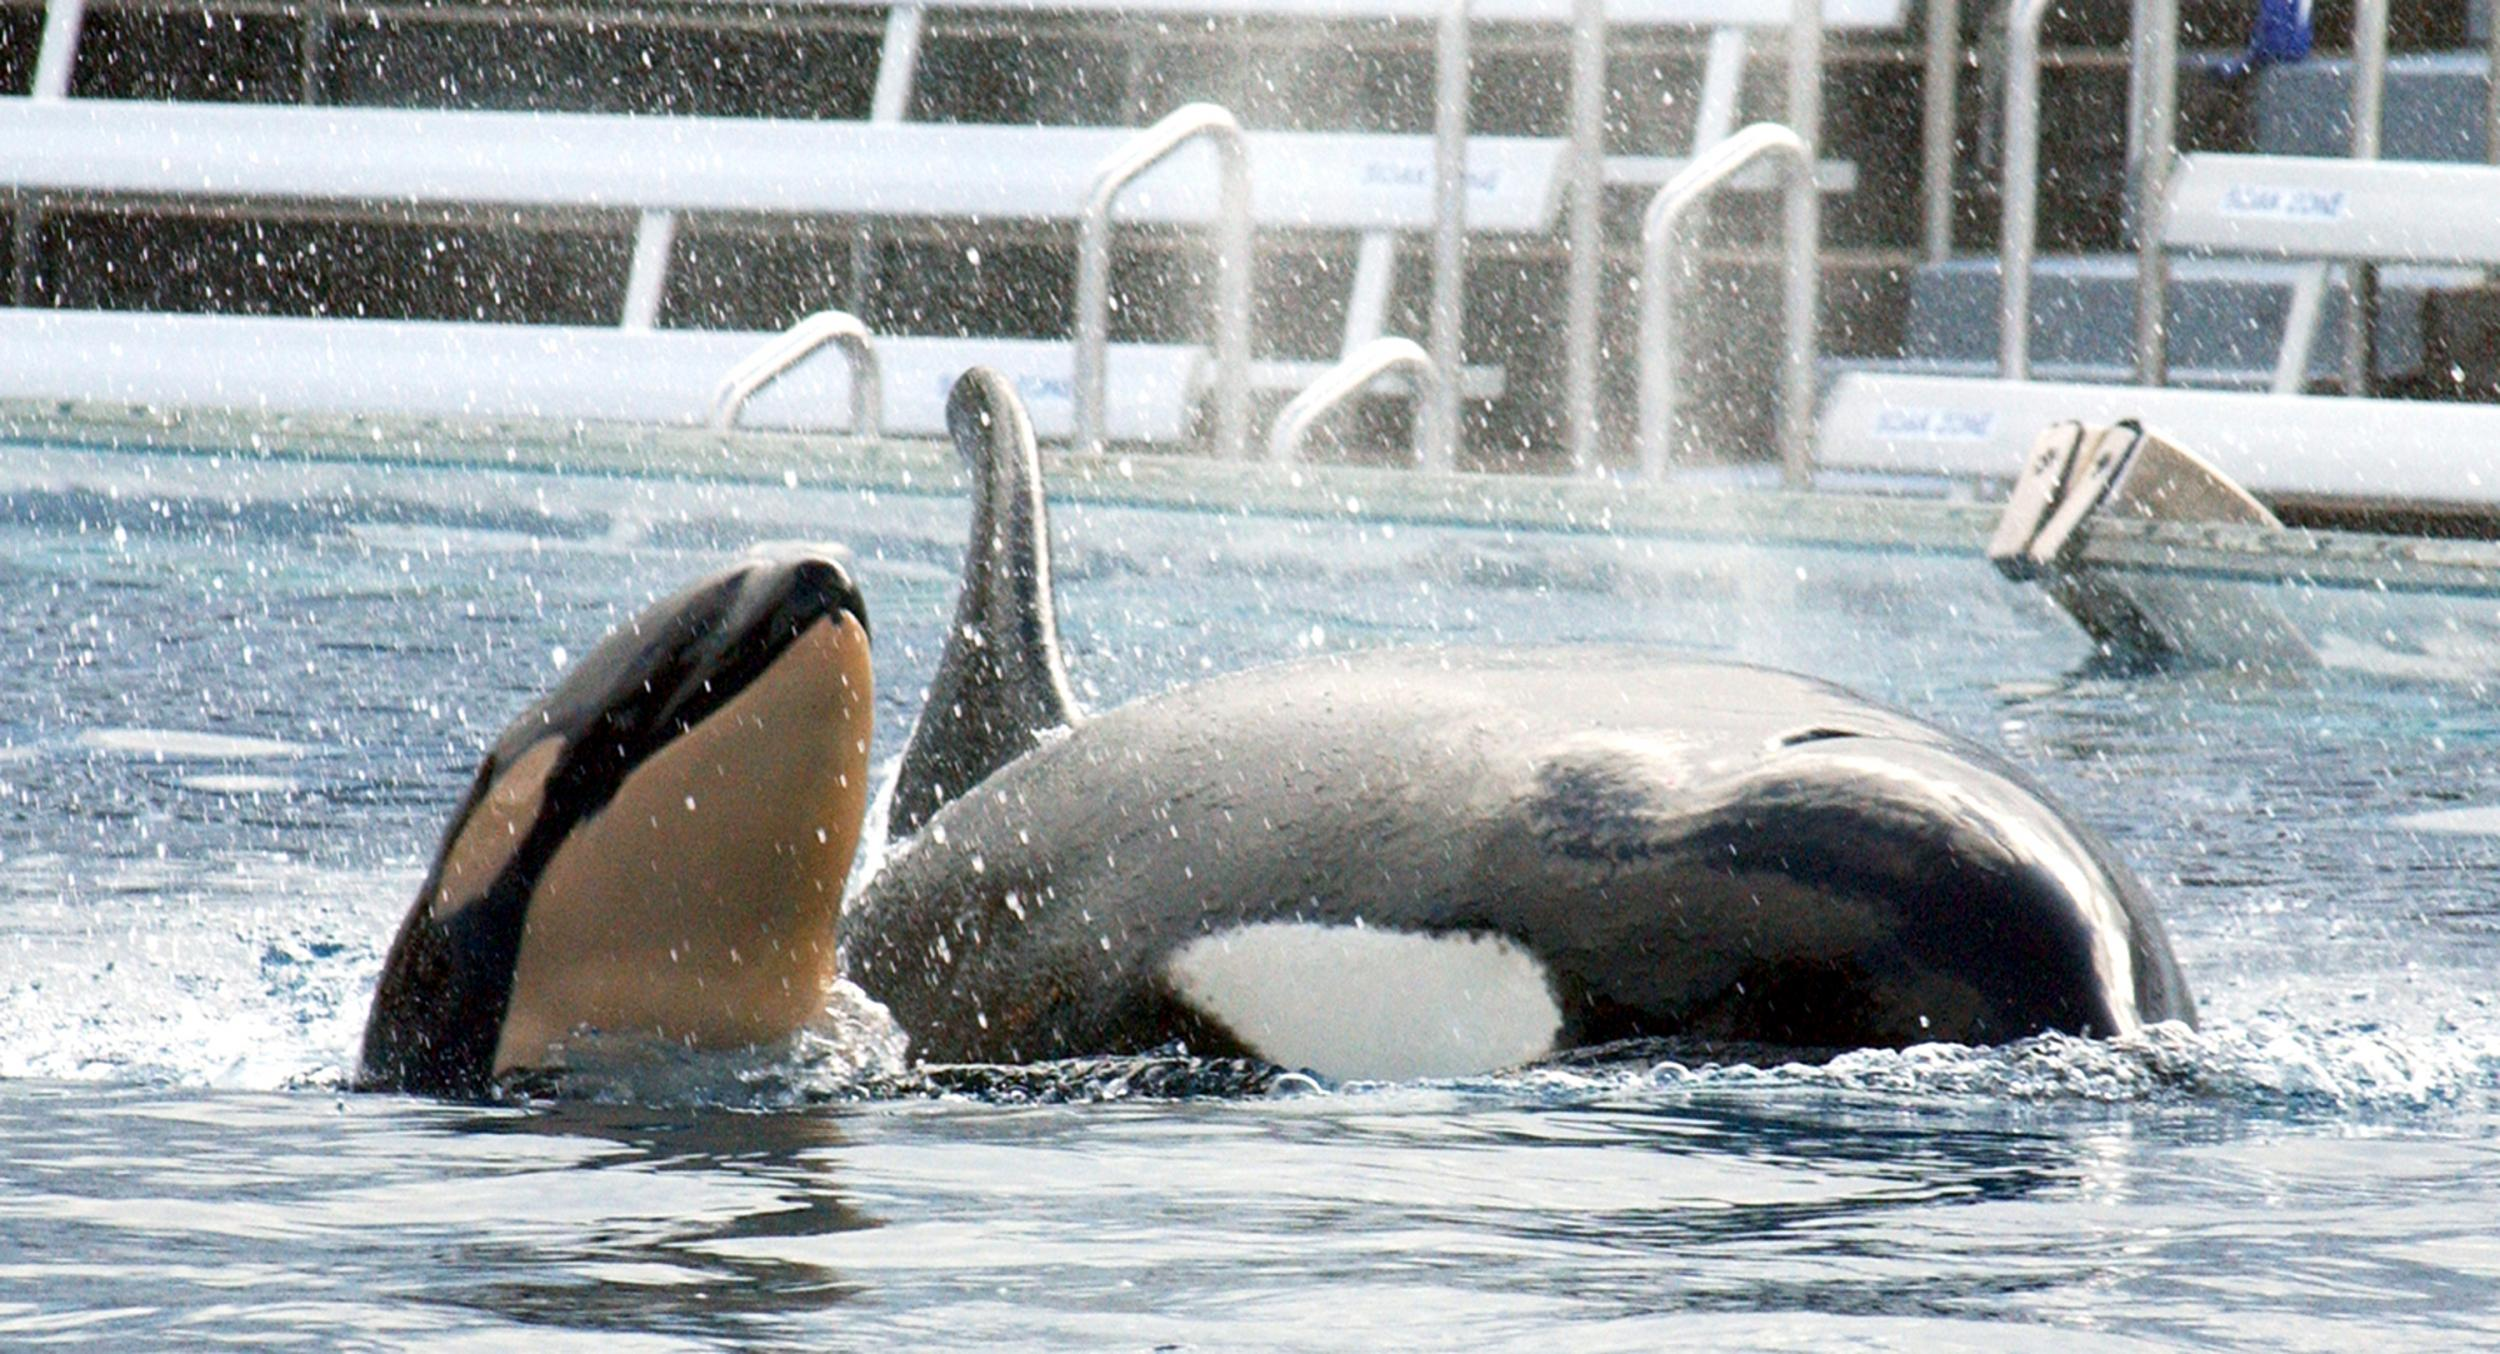 seaworld ceo says ending controversial whale breeding programme